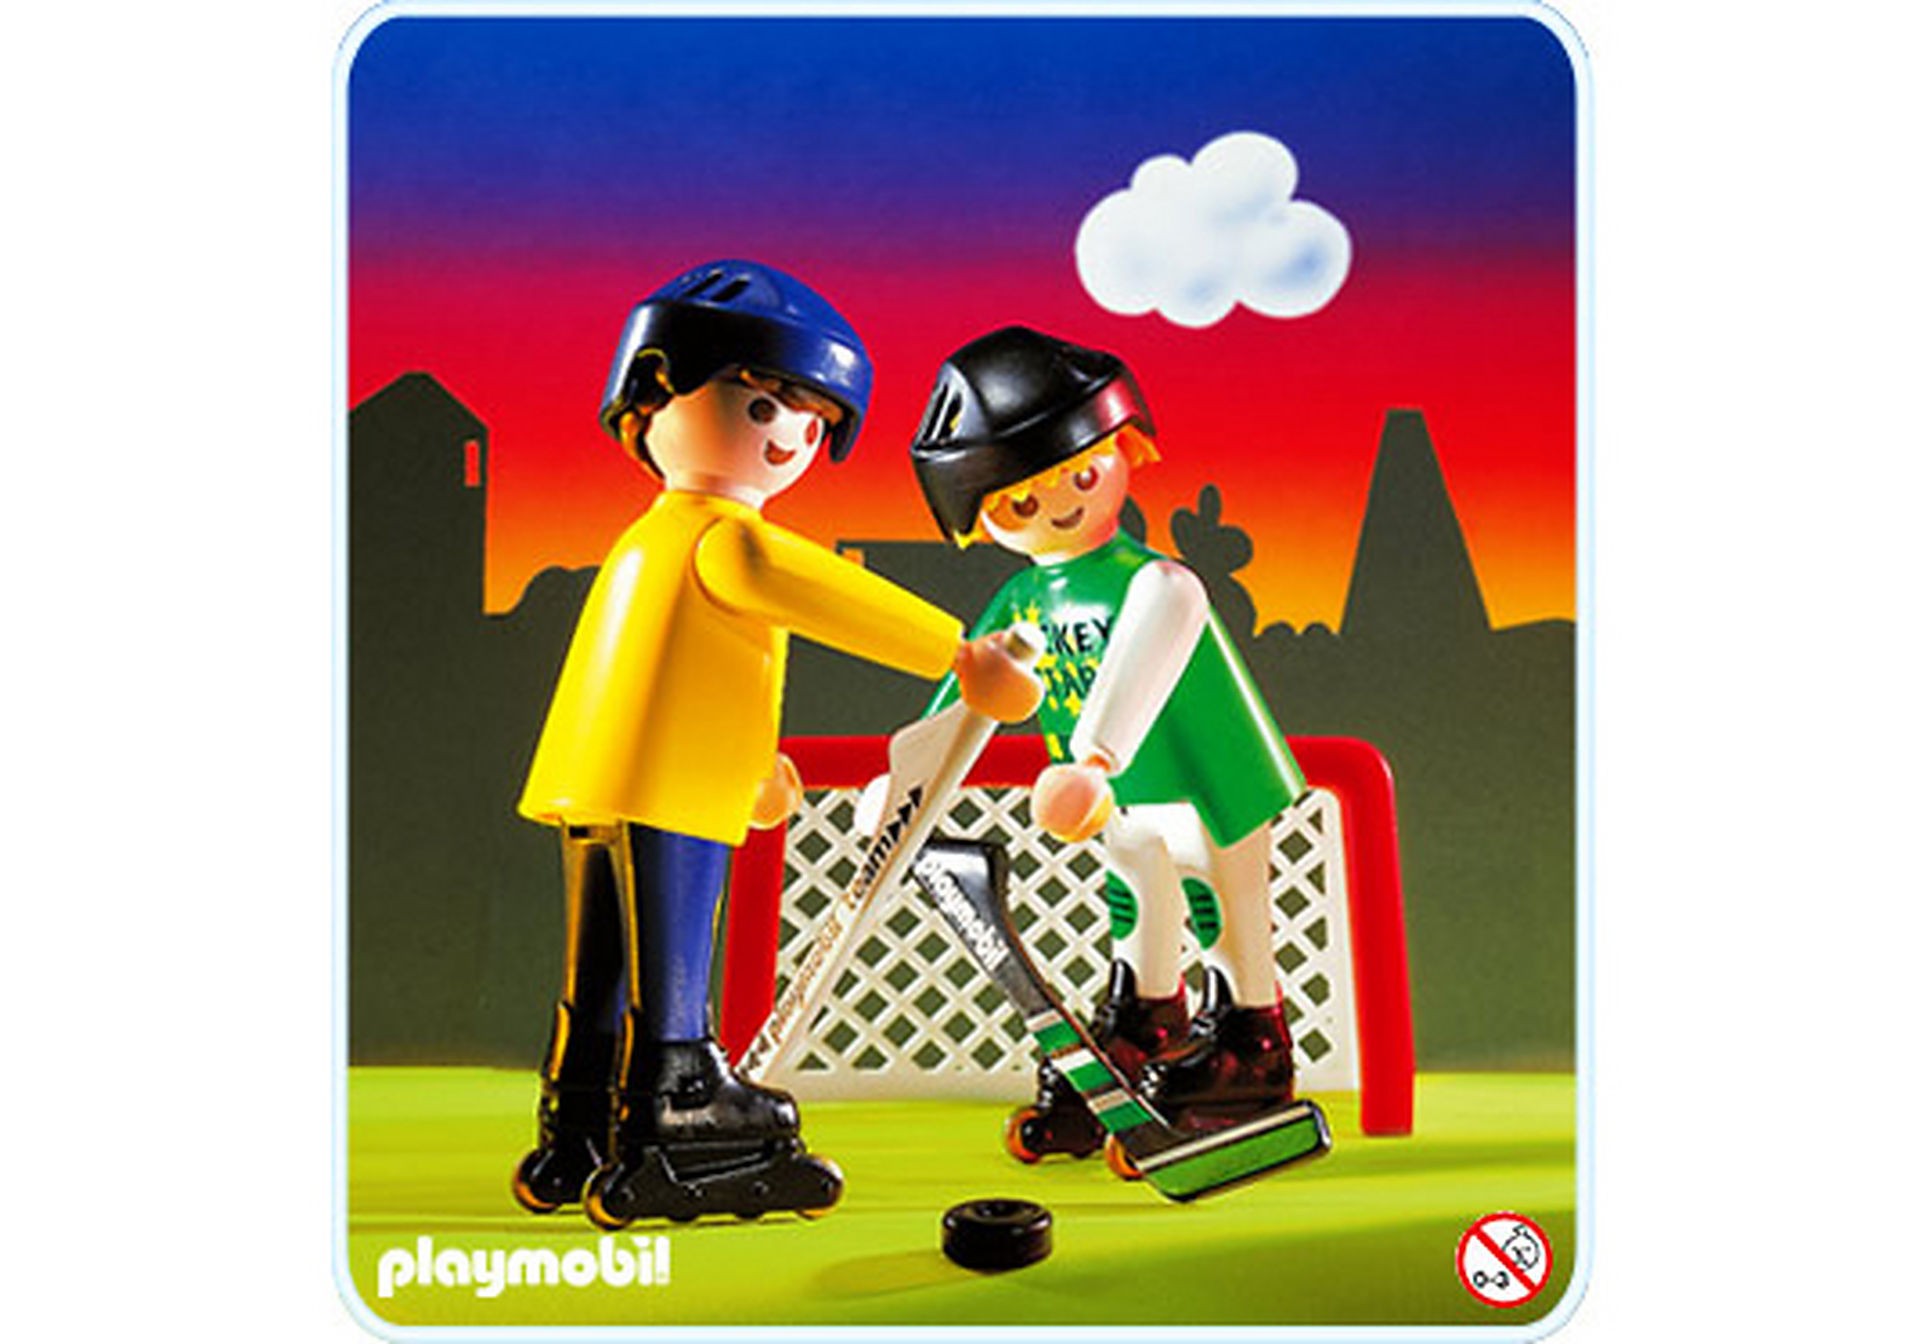 http://media.playmobil.com/i/playmobil/3869-A_product_detail/Hockeyeurs / rollers